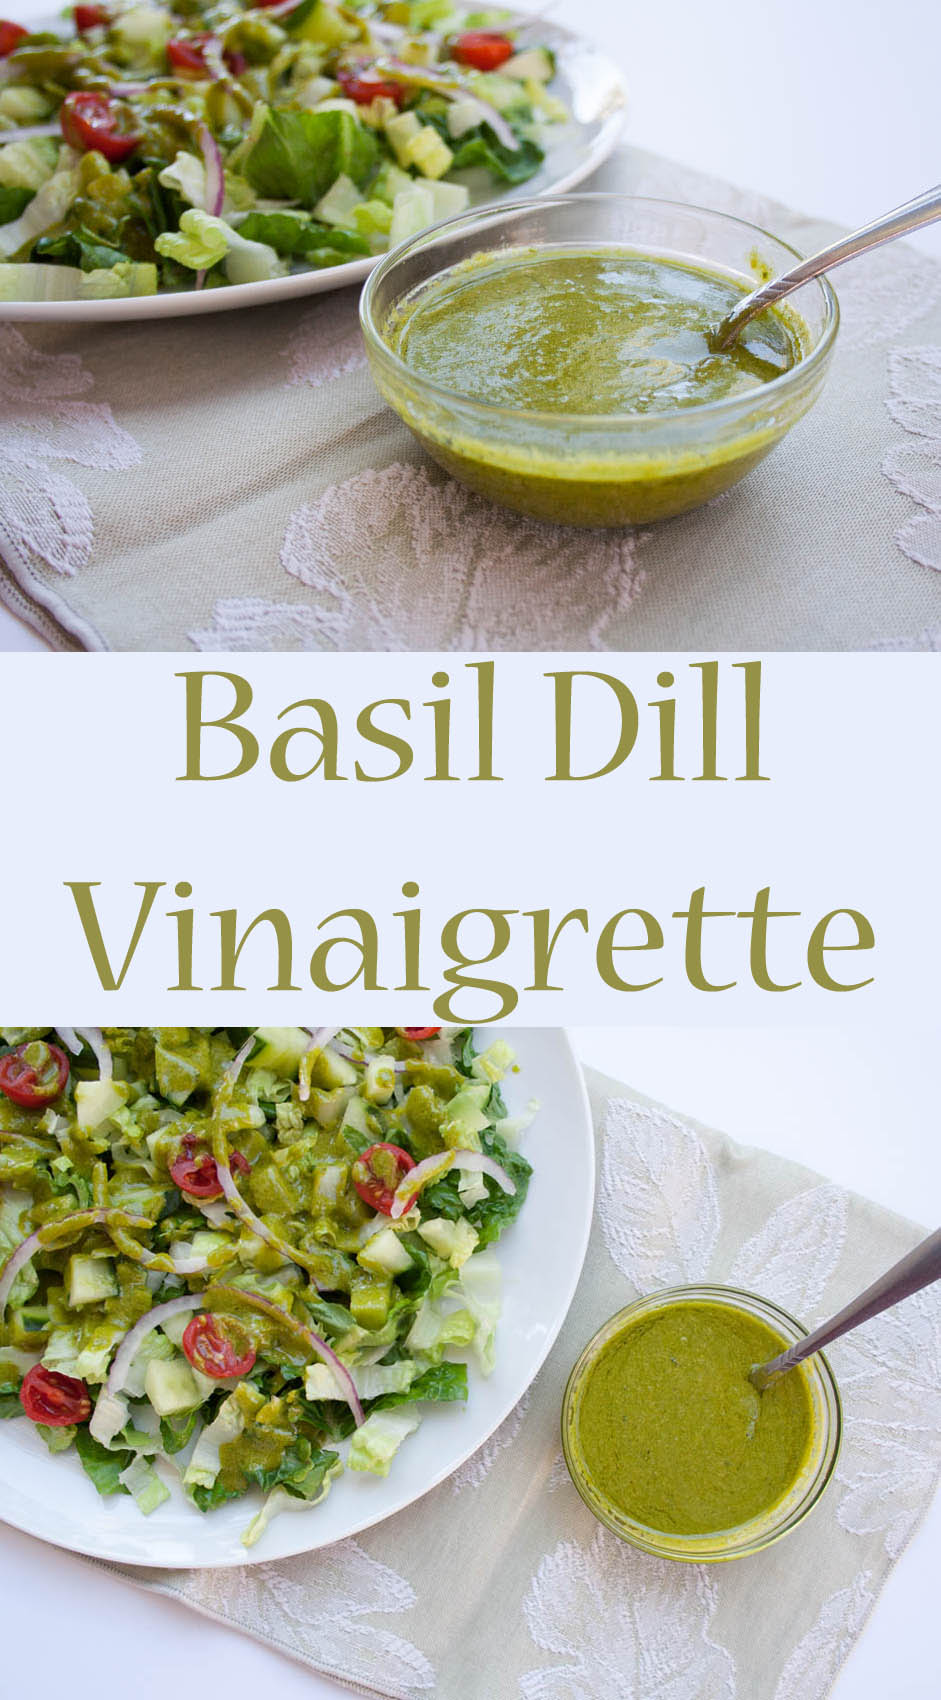 Basil Dill Vinaigrette (vegan, gluten free) This addictive vegan salad dressing has fresh garden herbs, Dijon mustard, agave syrup, cheesy nutritional yeast, red wine vinegar, and extra virgin olive oil.